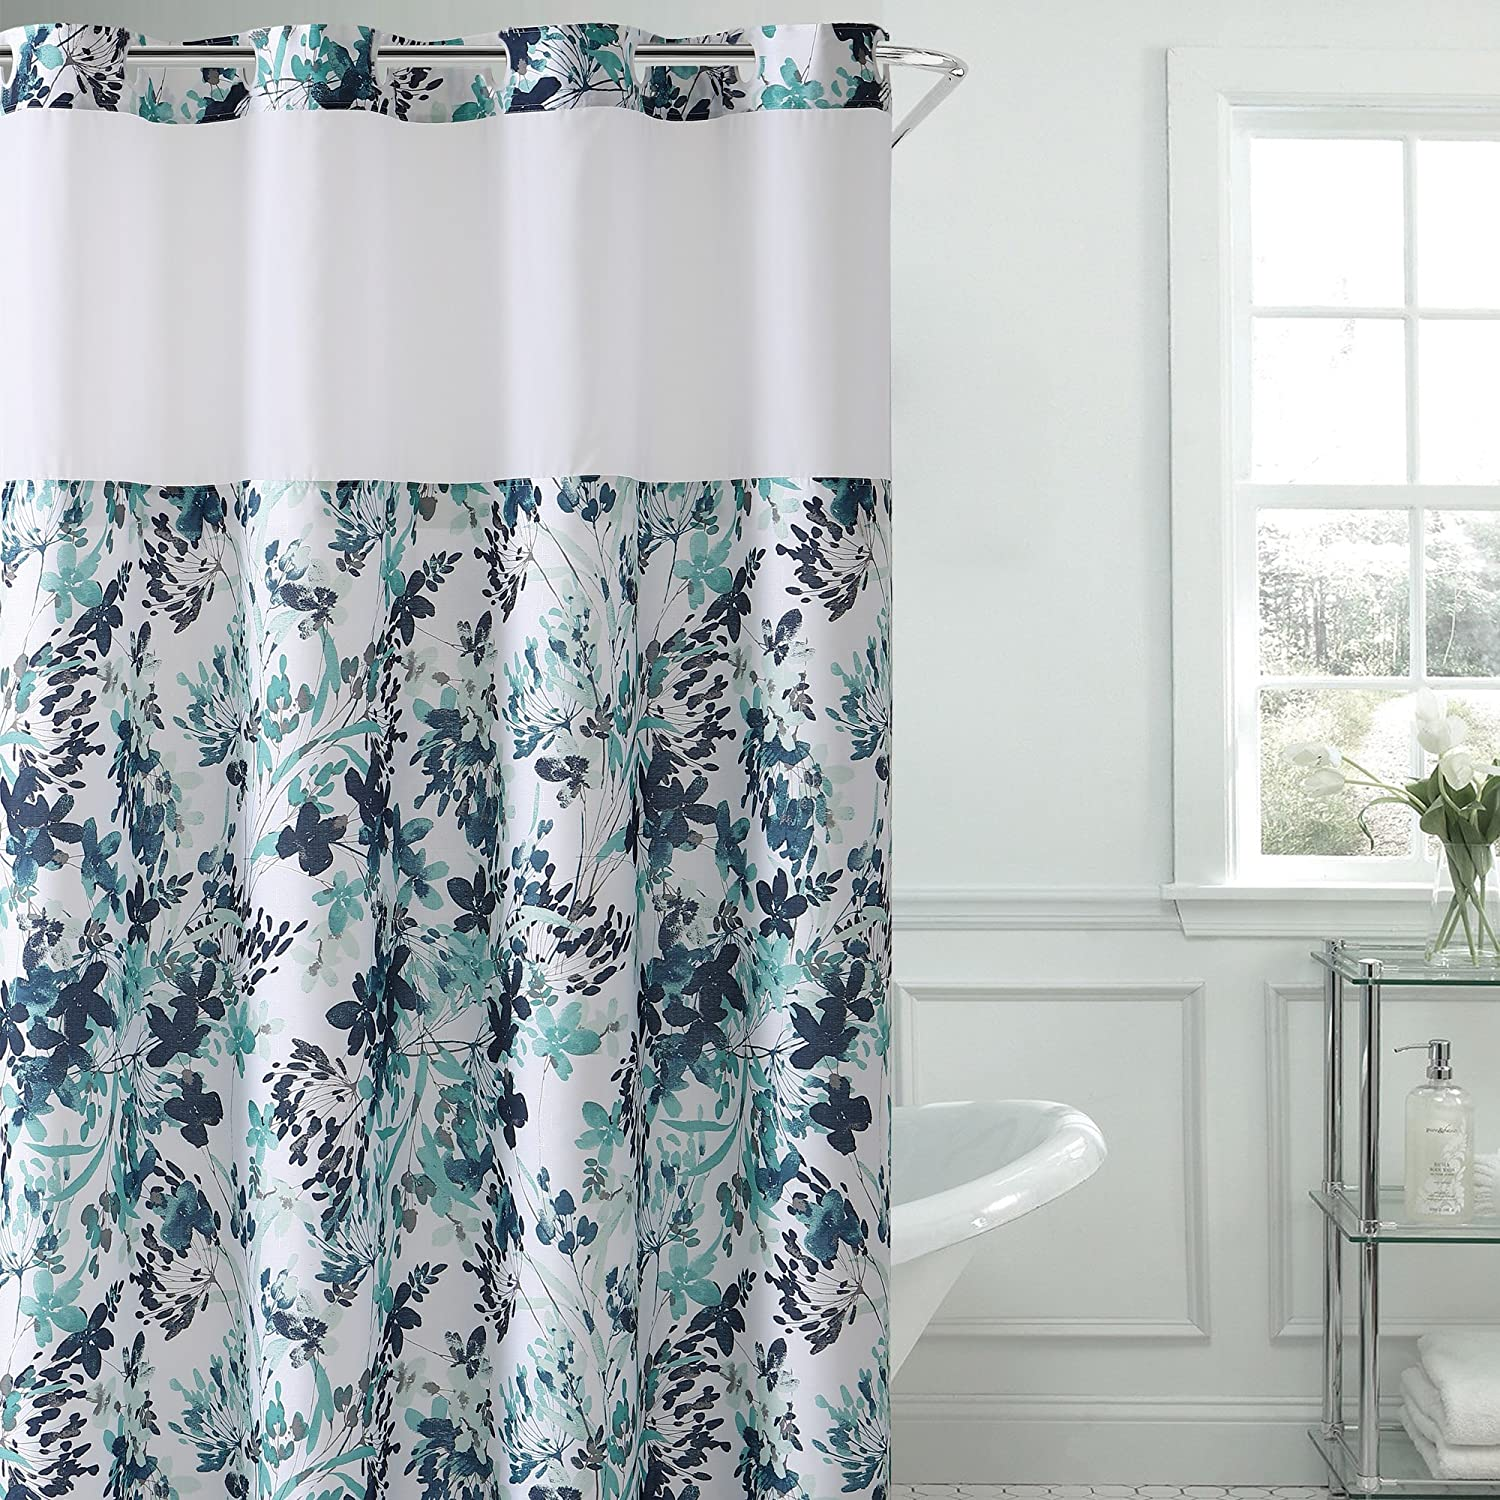 Amazoncom Hookless Water Color Floral Print Shower Curtain With